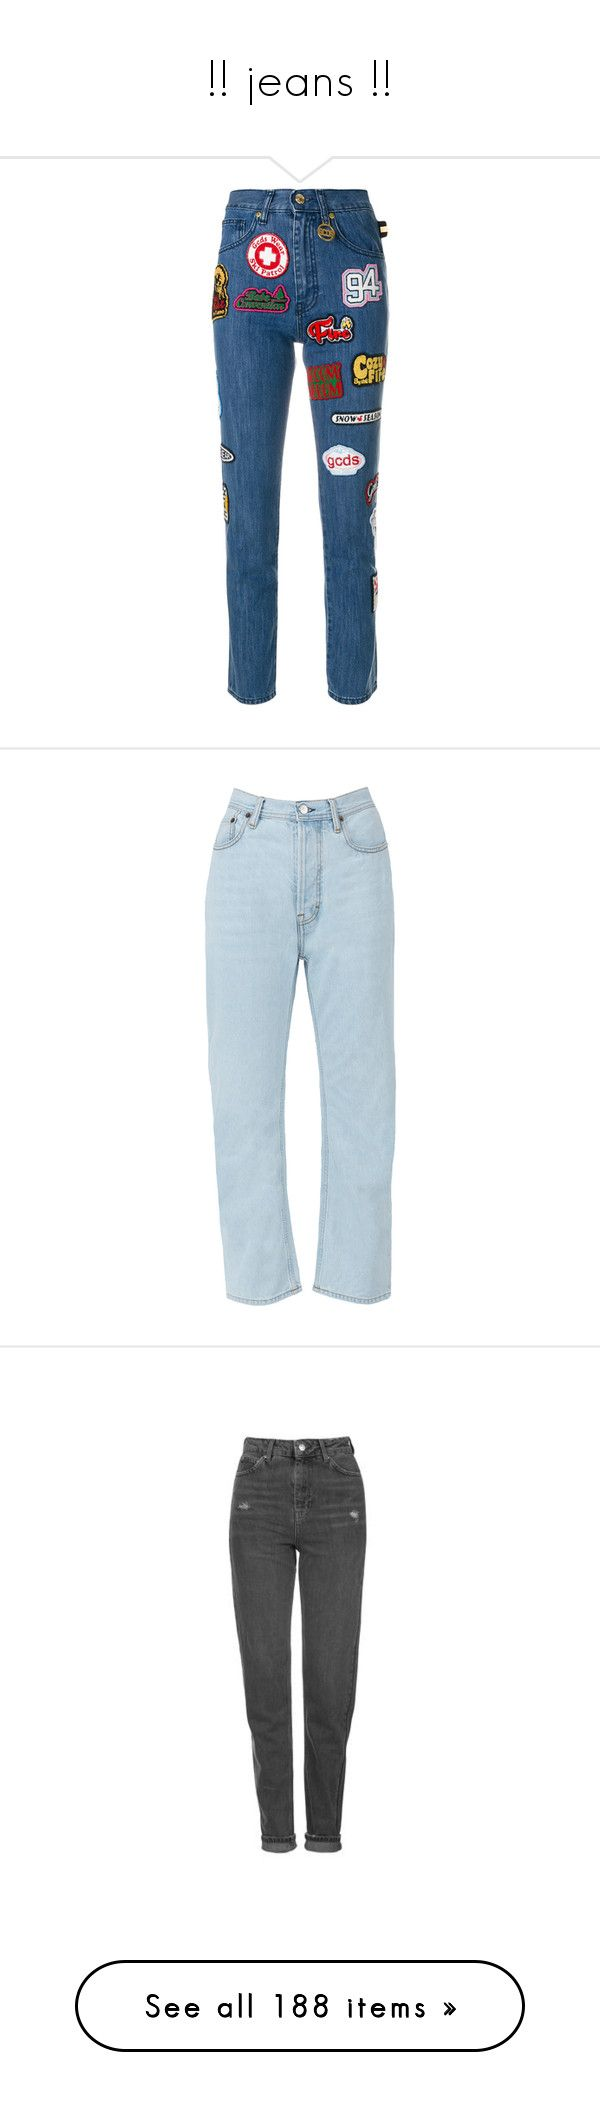 """!! jeans !!"" by emiannx ❤ liked on Polyvore featuring jeans, bottoms, pants, light blue, light blue high waisted skinny jeans, patched skinny jeans, denim skinny jeans, light blue skinny jeans, high waisted denim skinny jeans and blue"